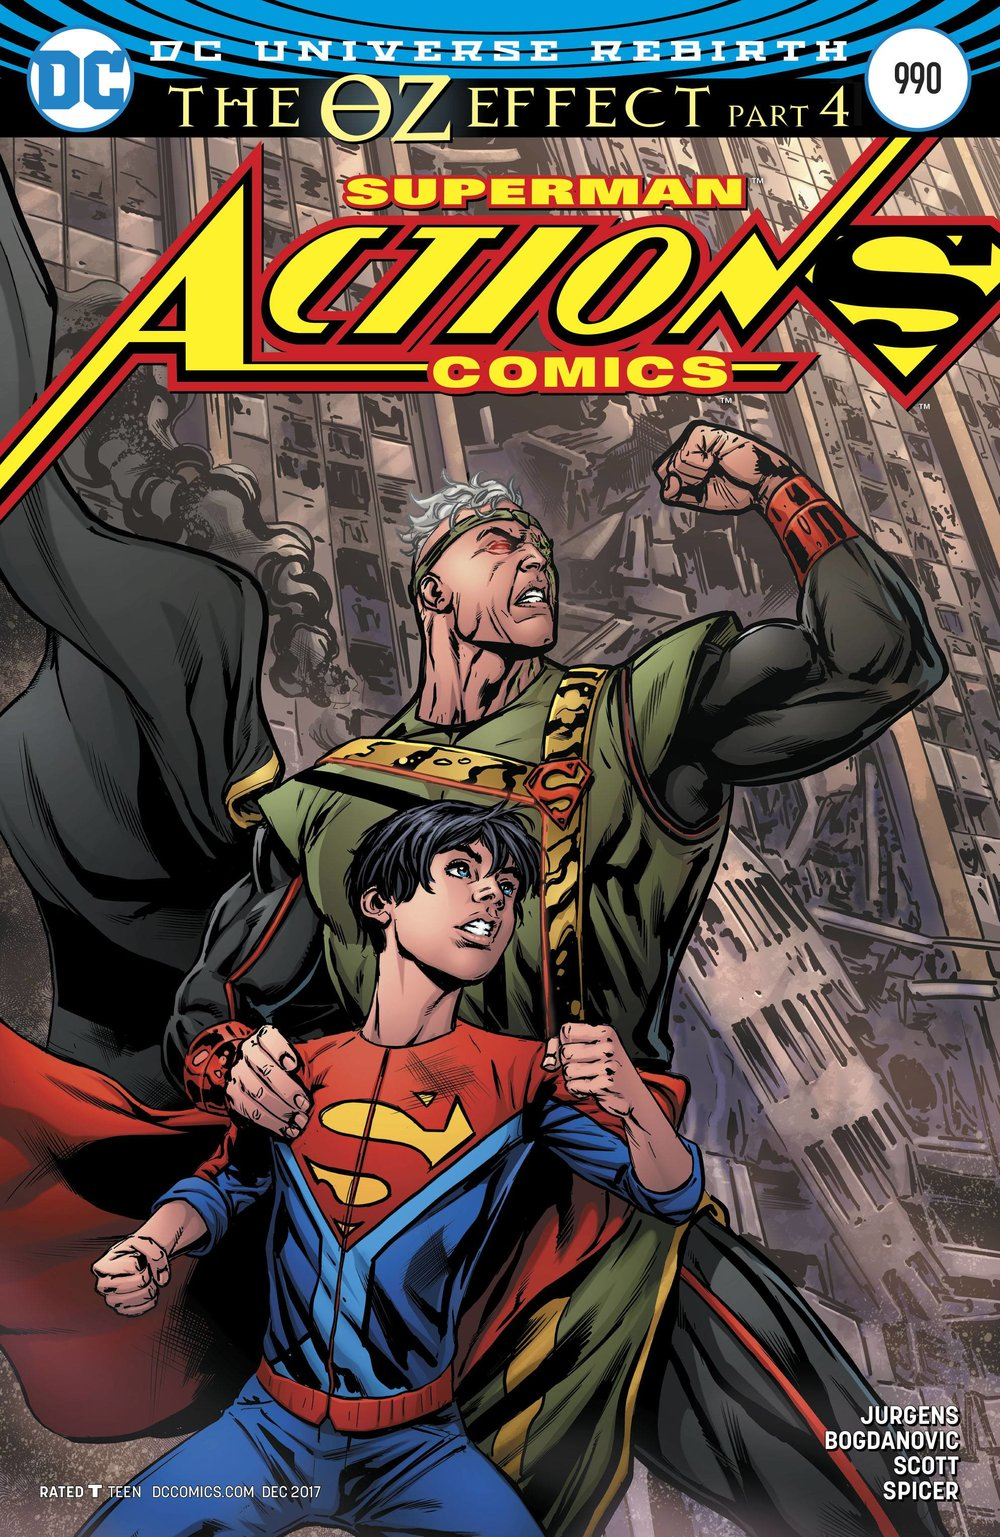 ACTION COMICS 990 VAR ED (OZ EFFECT).jpg